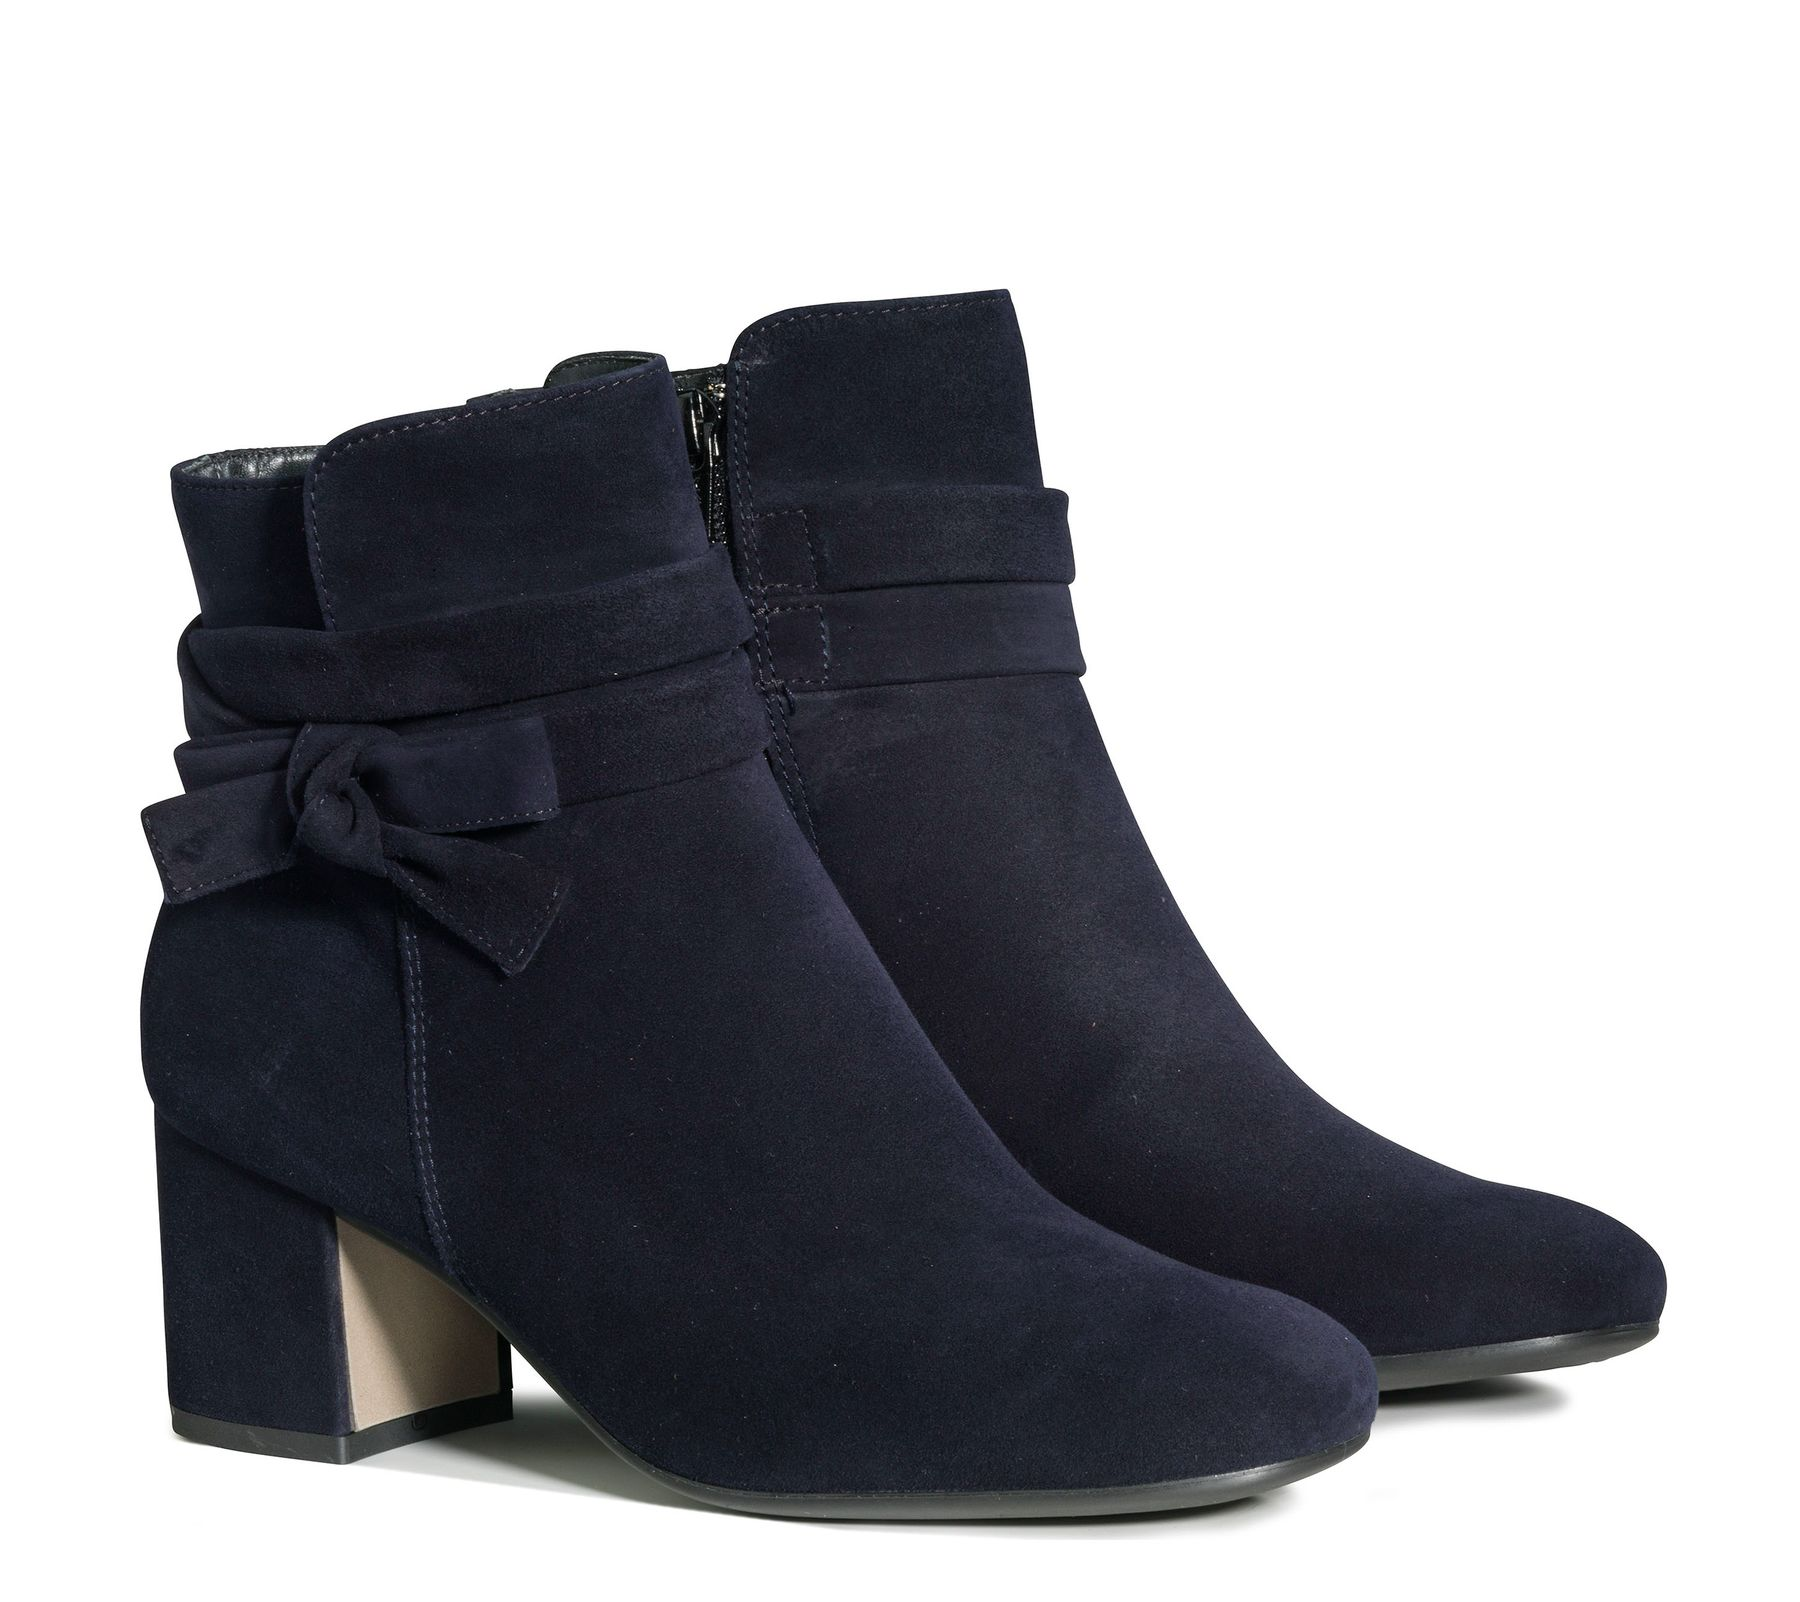 81f9e603fcd Playful ankle boots in blue - Paul Green